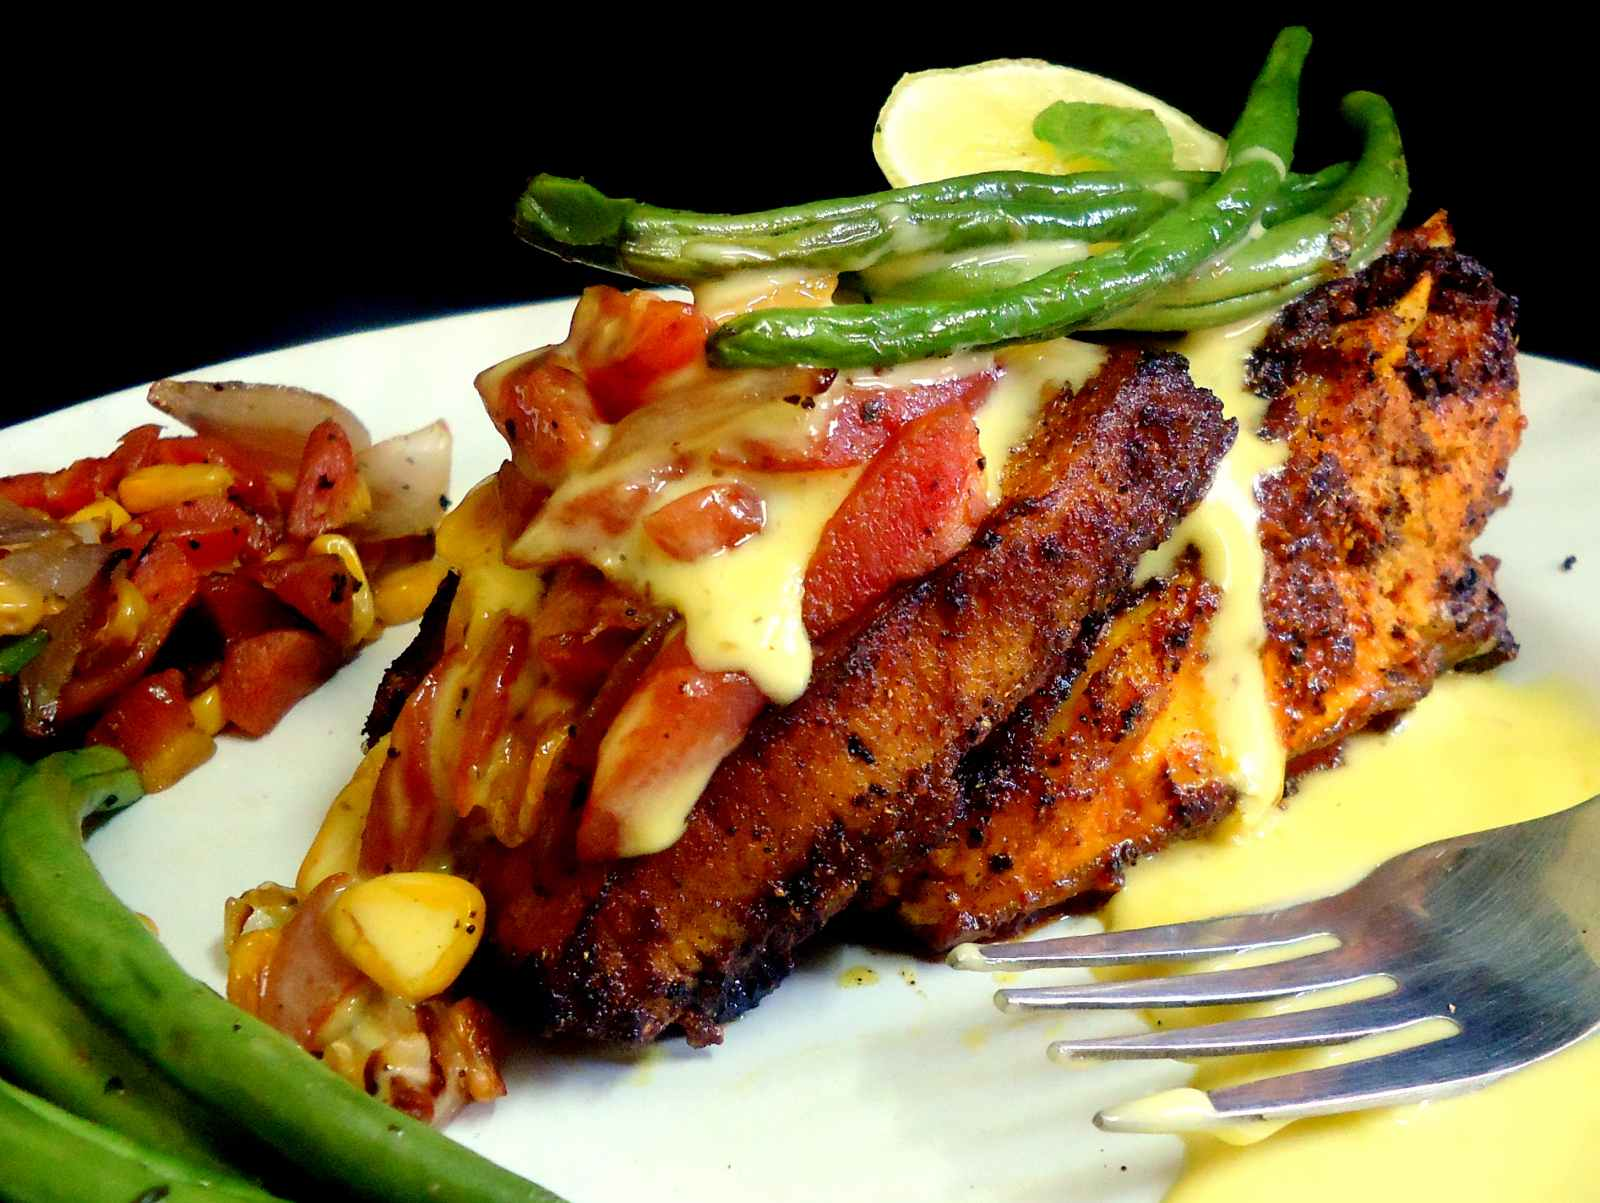 Chettinad Fish Fry With Roasted Corn, Onions And Carrots With French Beans Recipe